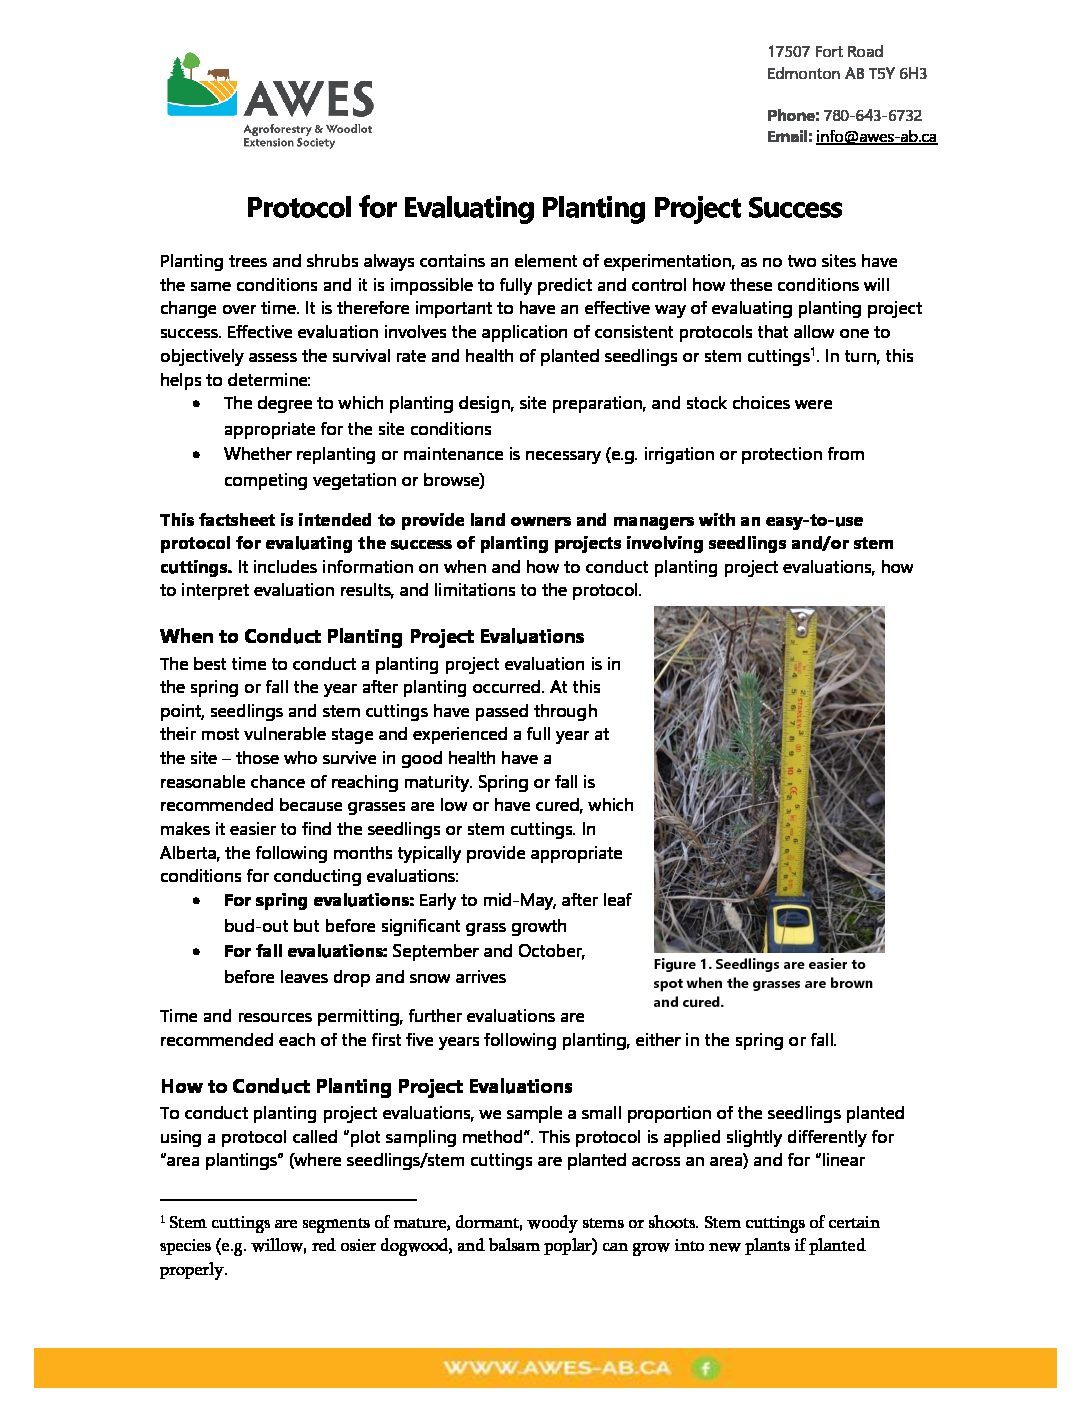 Protocol for Evaluating Planting Project Success